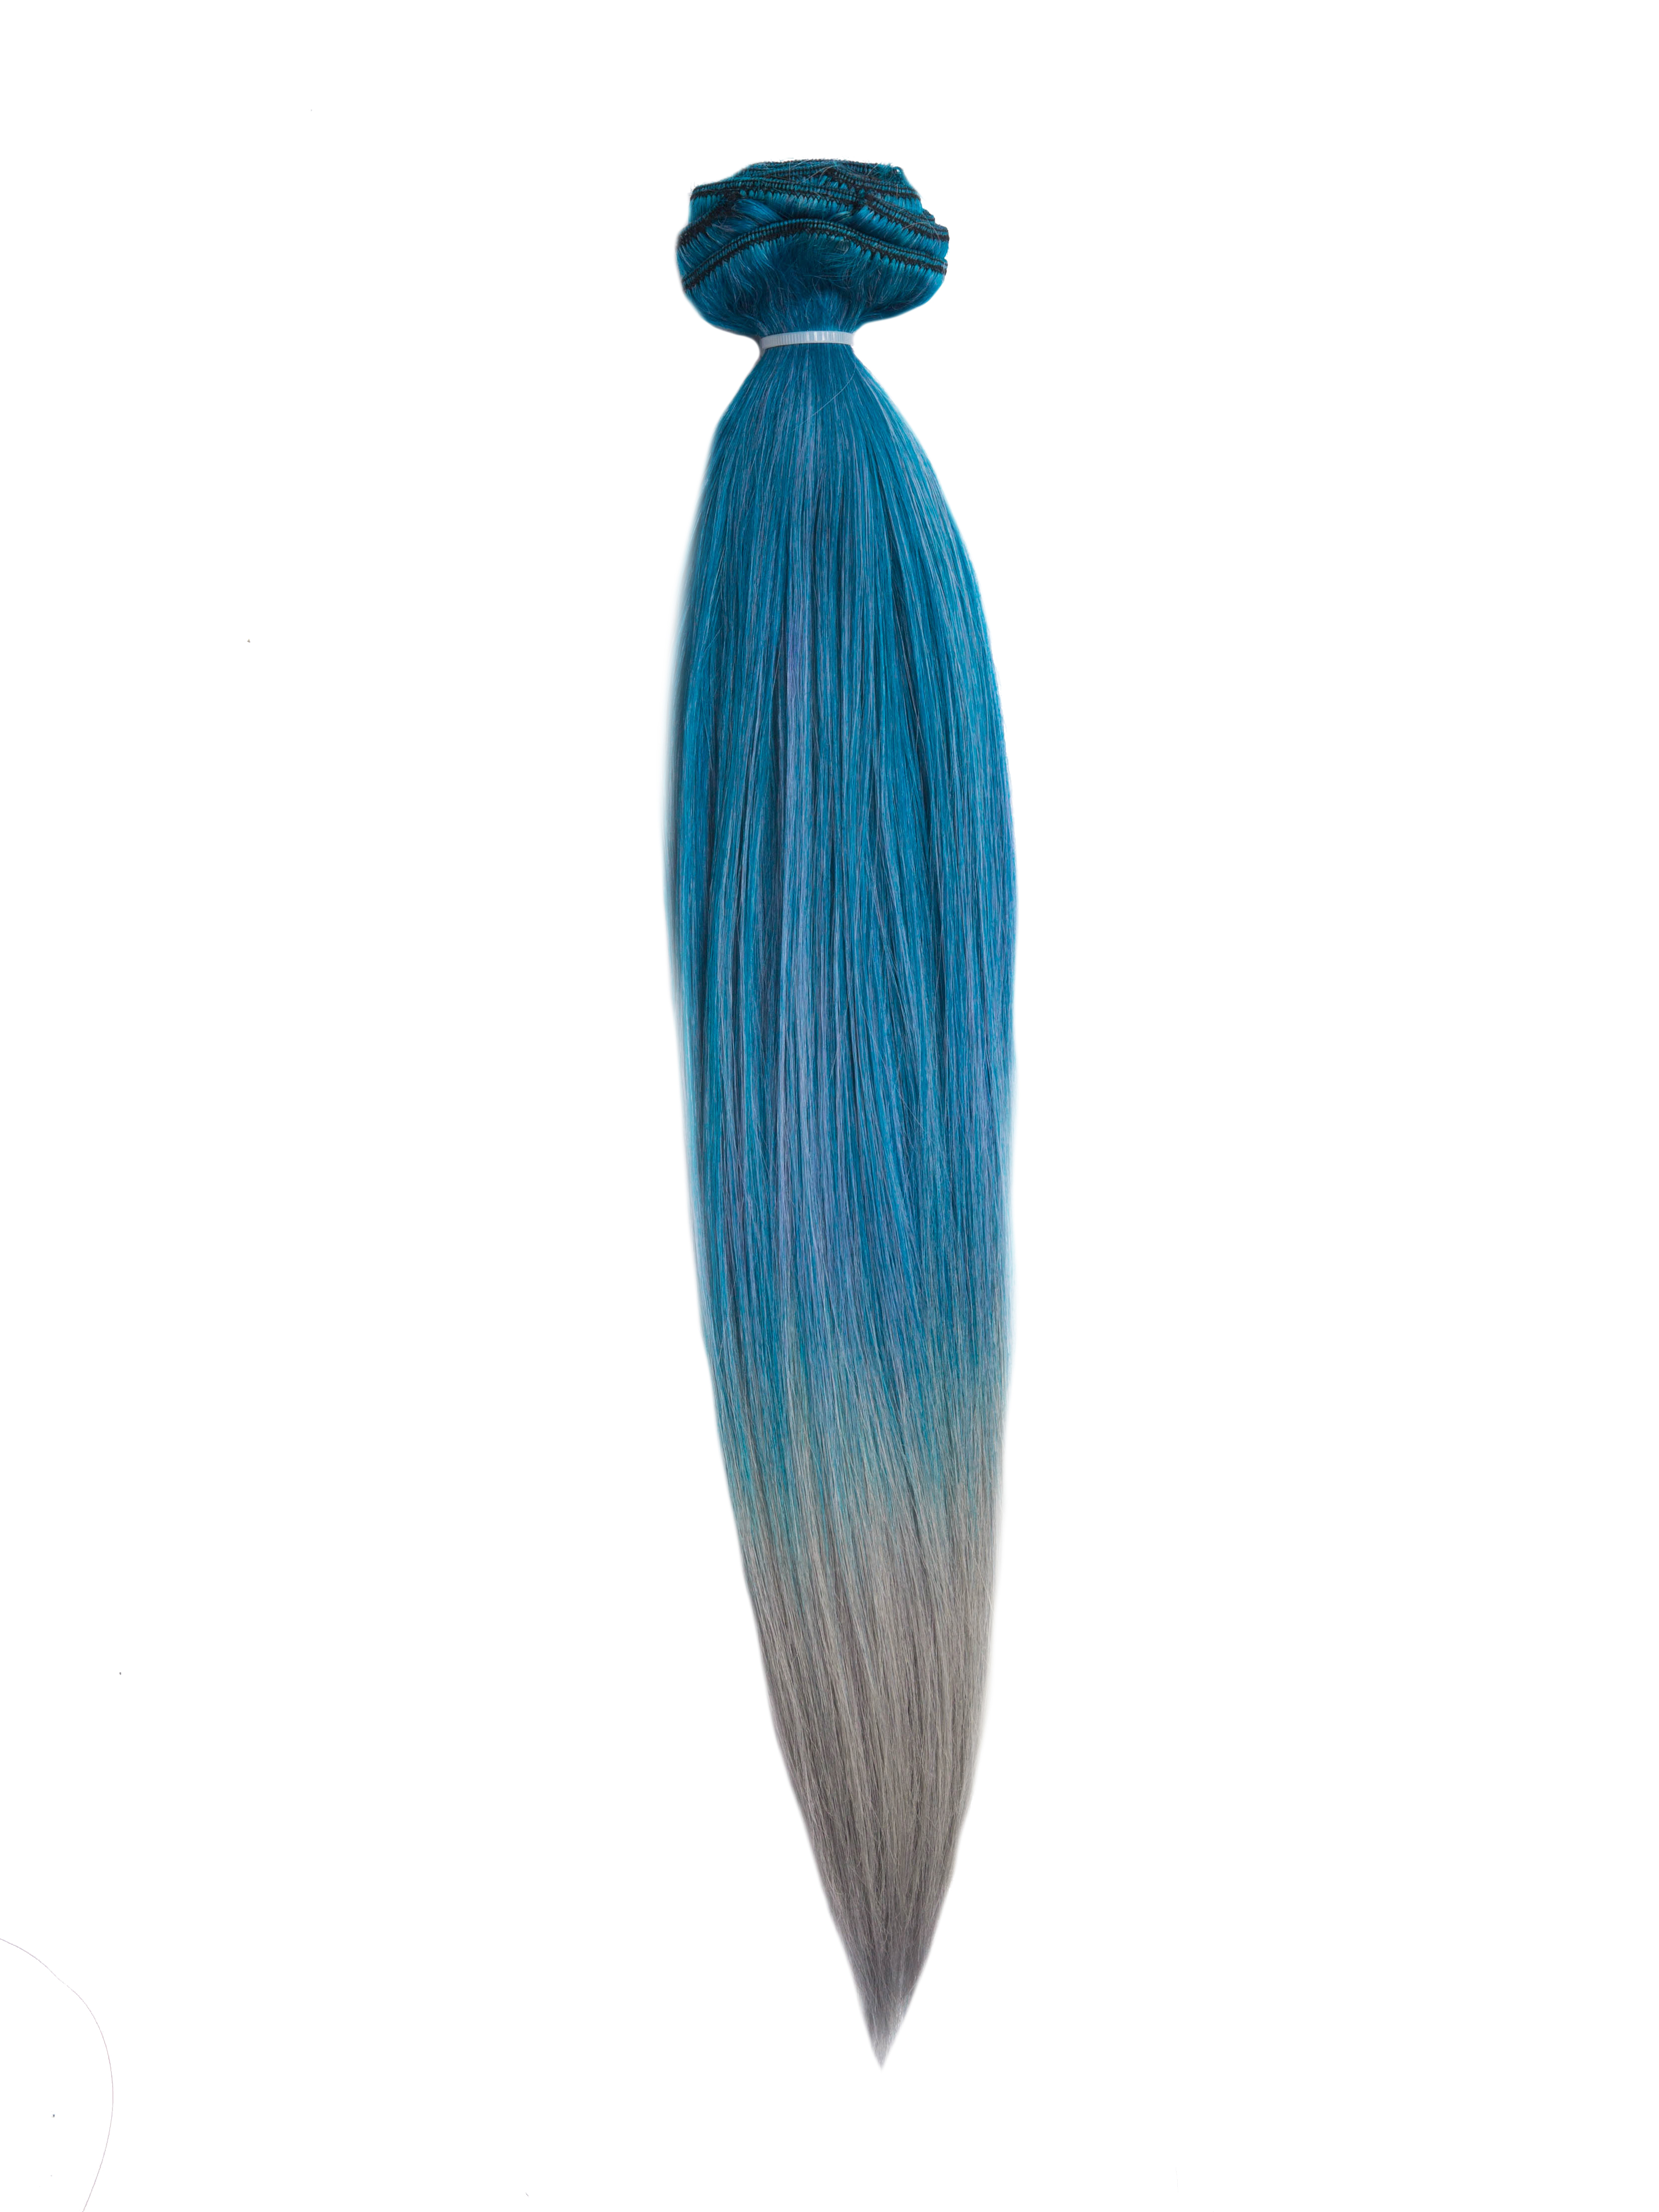 55cm 220g Mixdyeable Clip in Farbig Sale Extensions HHF-B19